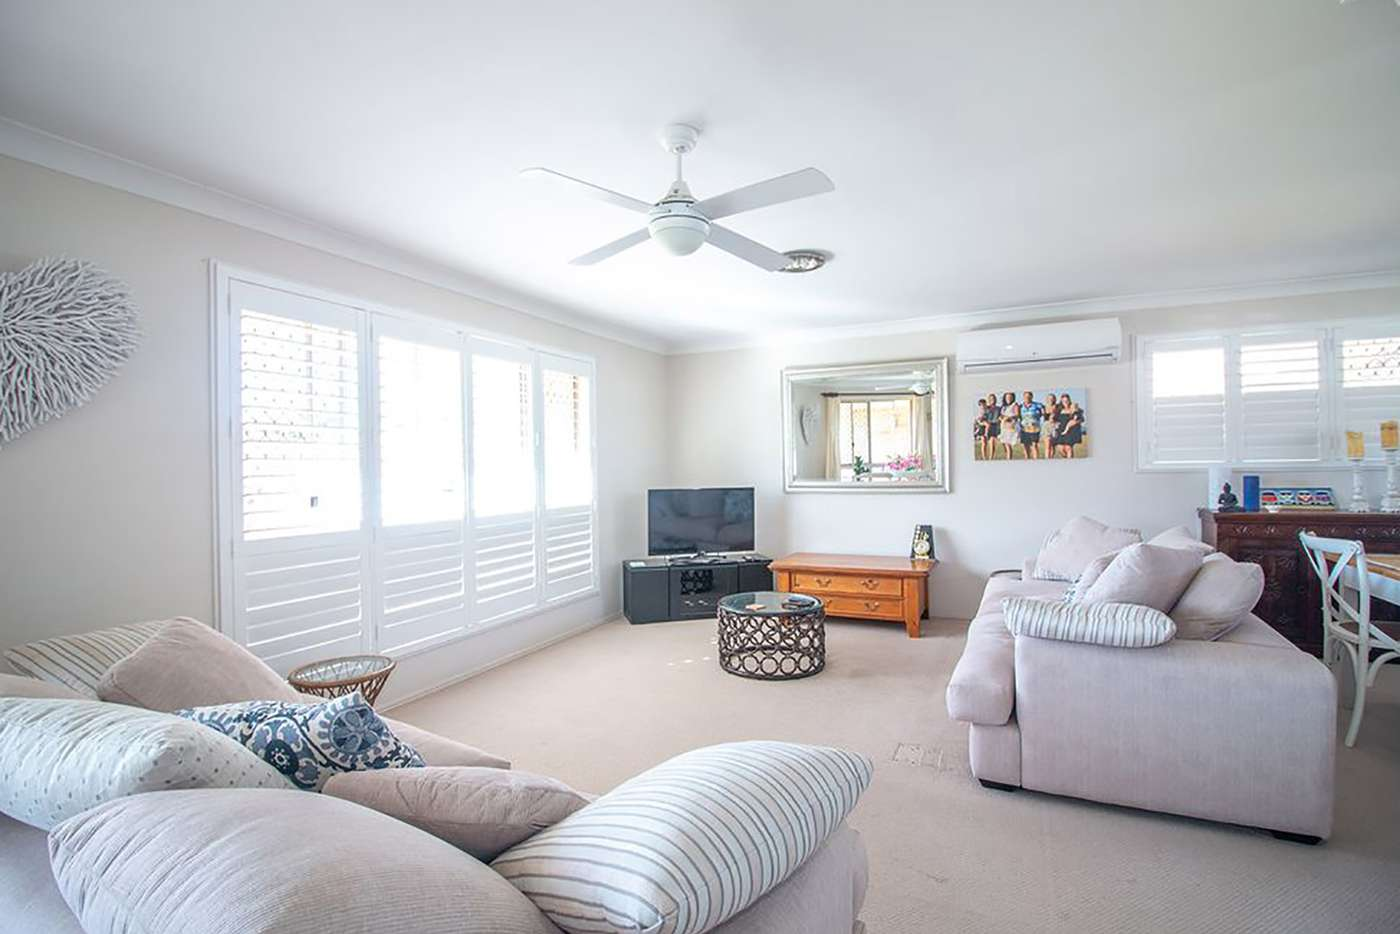 Main view of Homely unit listing, 1/29 Kiata Parade, Tweed Heads NSW 2485